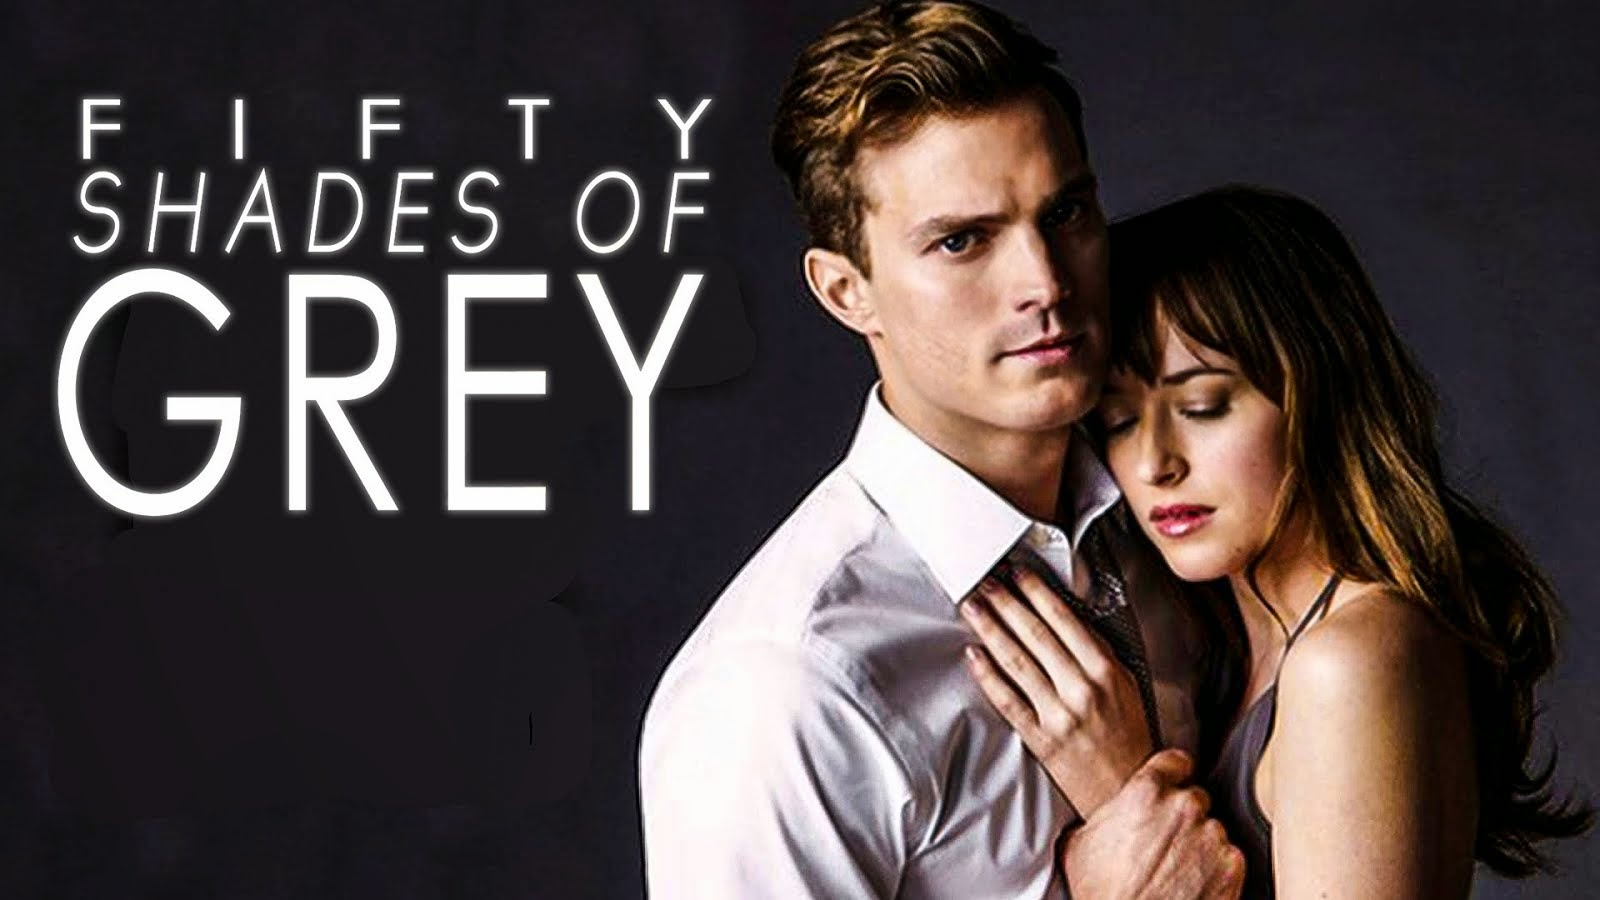 Fifty Shades Of Grey Full Movie Free Watch Online